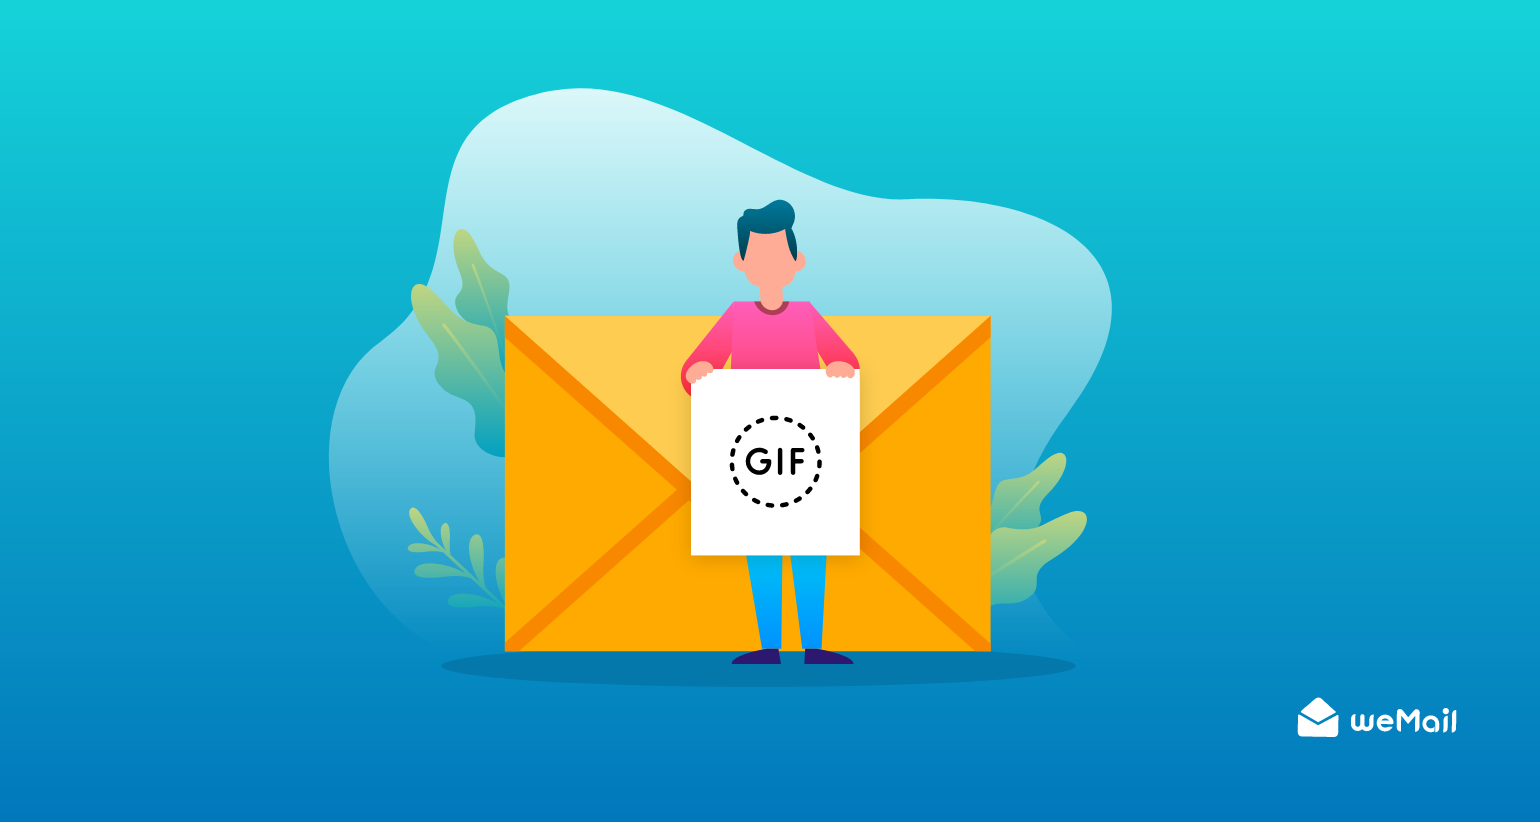 gifs in email